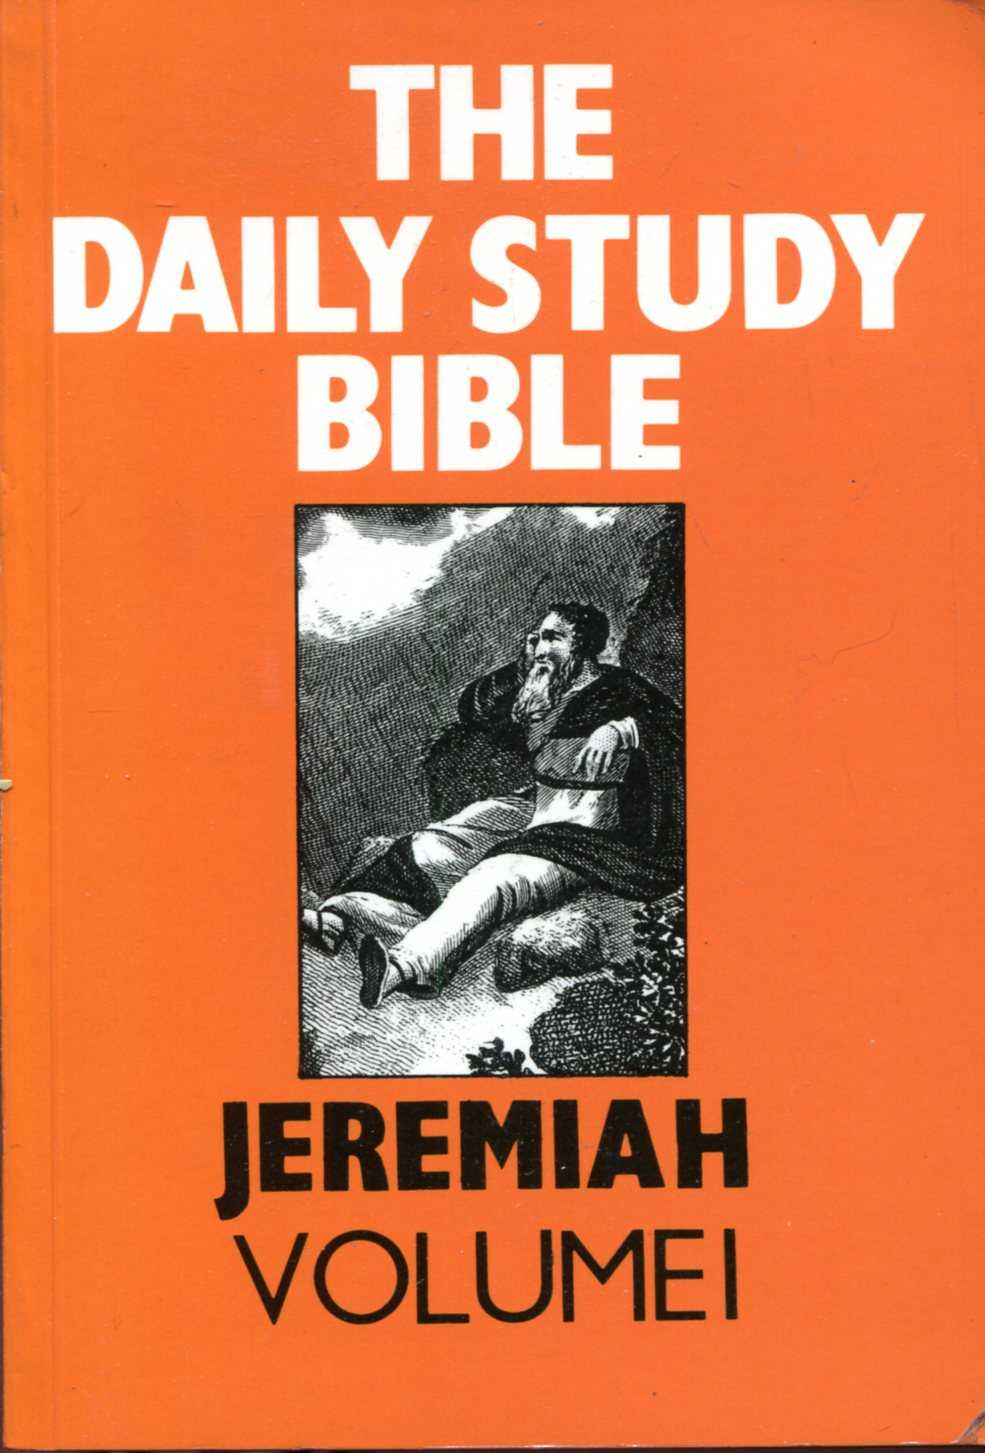 Image for Jeremiah: volume I (Daily Study Bible)